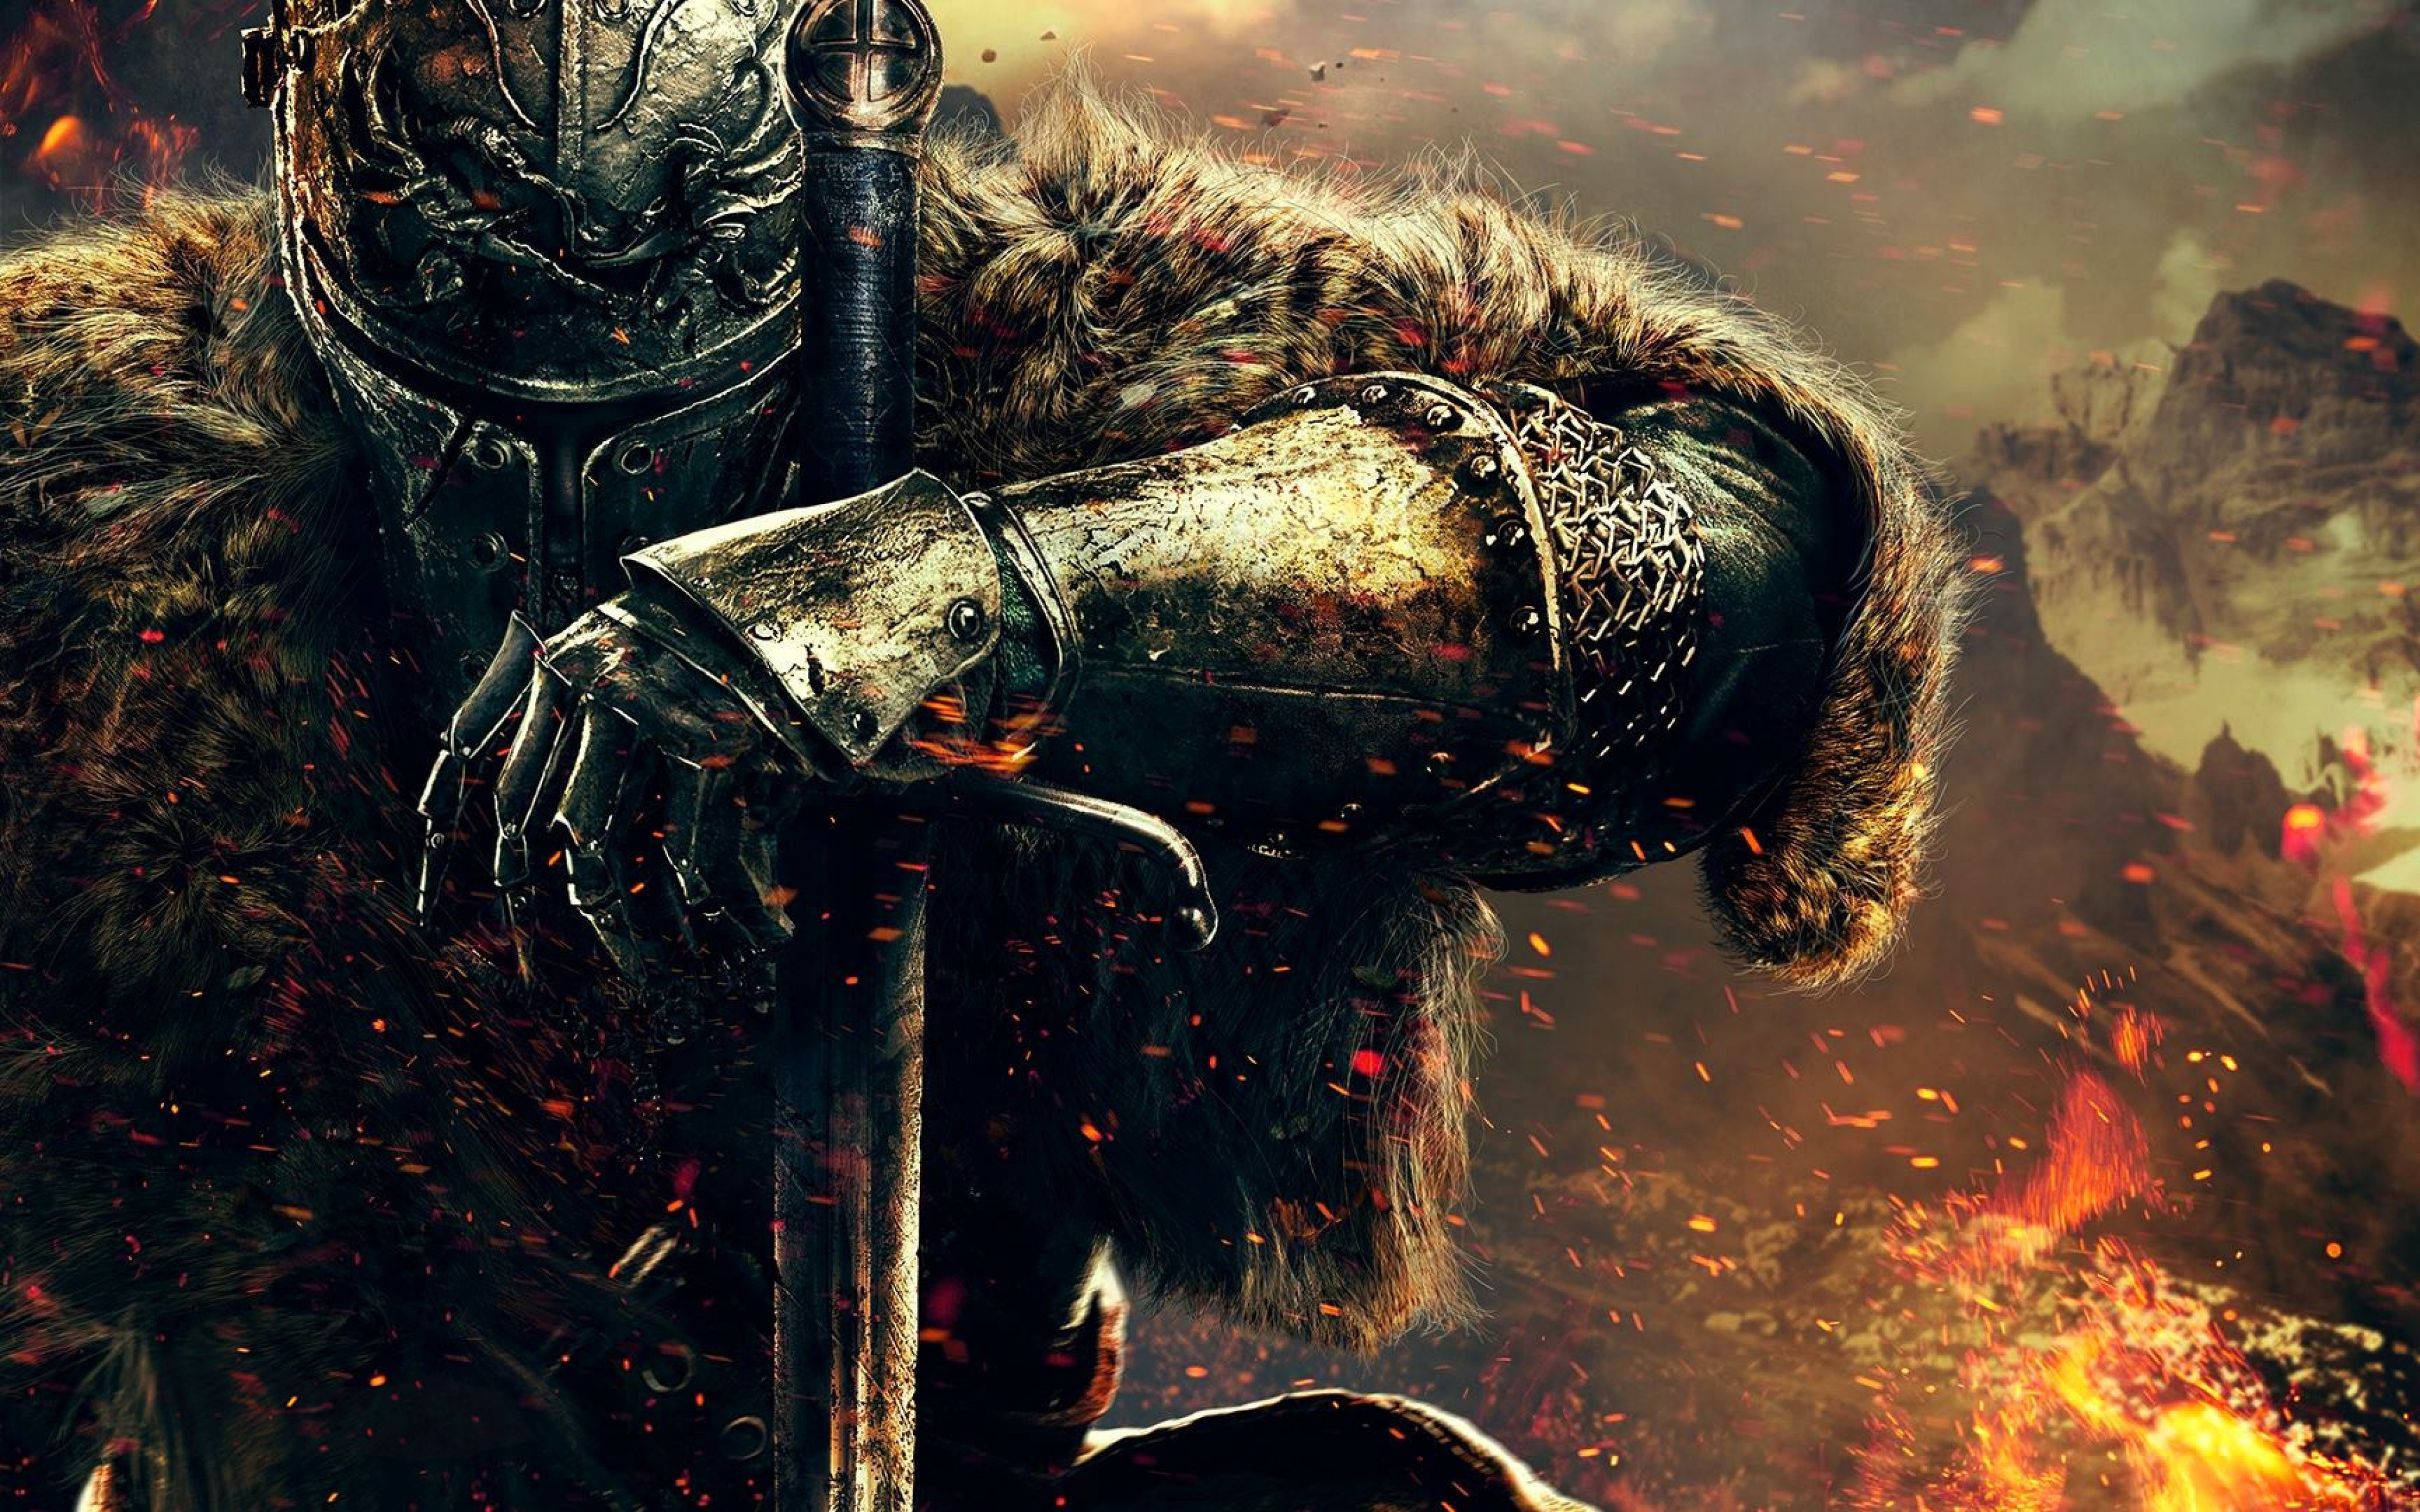 Dark Souls 2 4K Game Wallpaper 4K Wallpaper   Ultra HD 4K Wallpapers 3840x2400